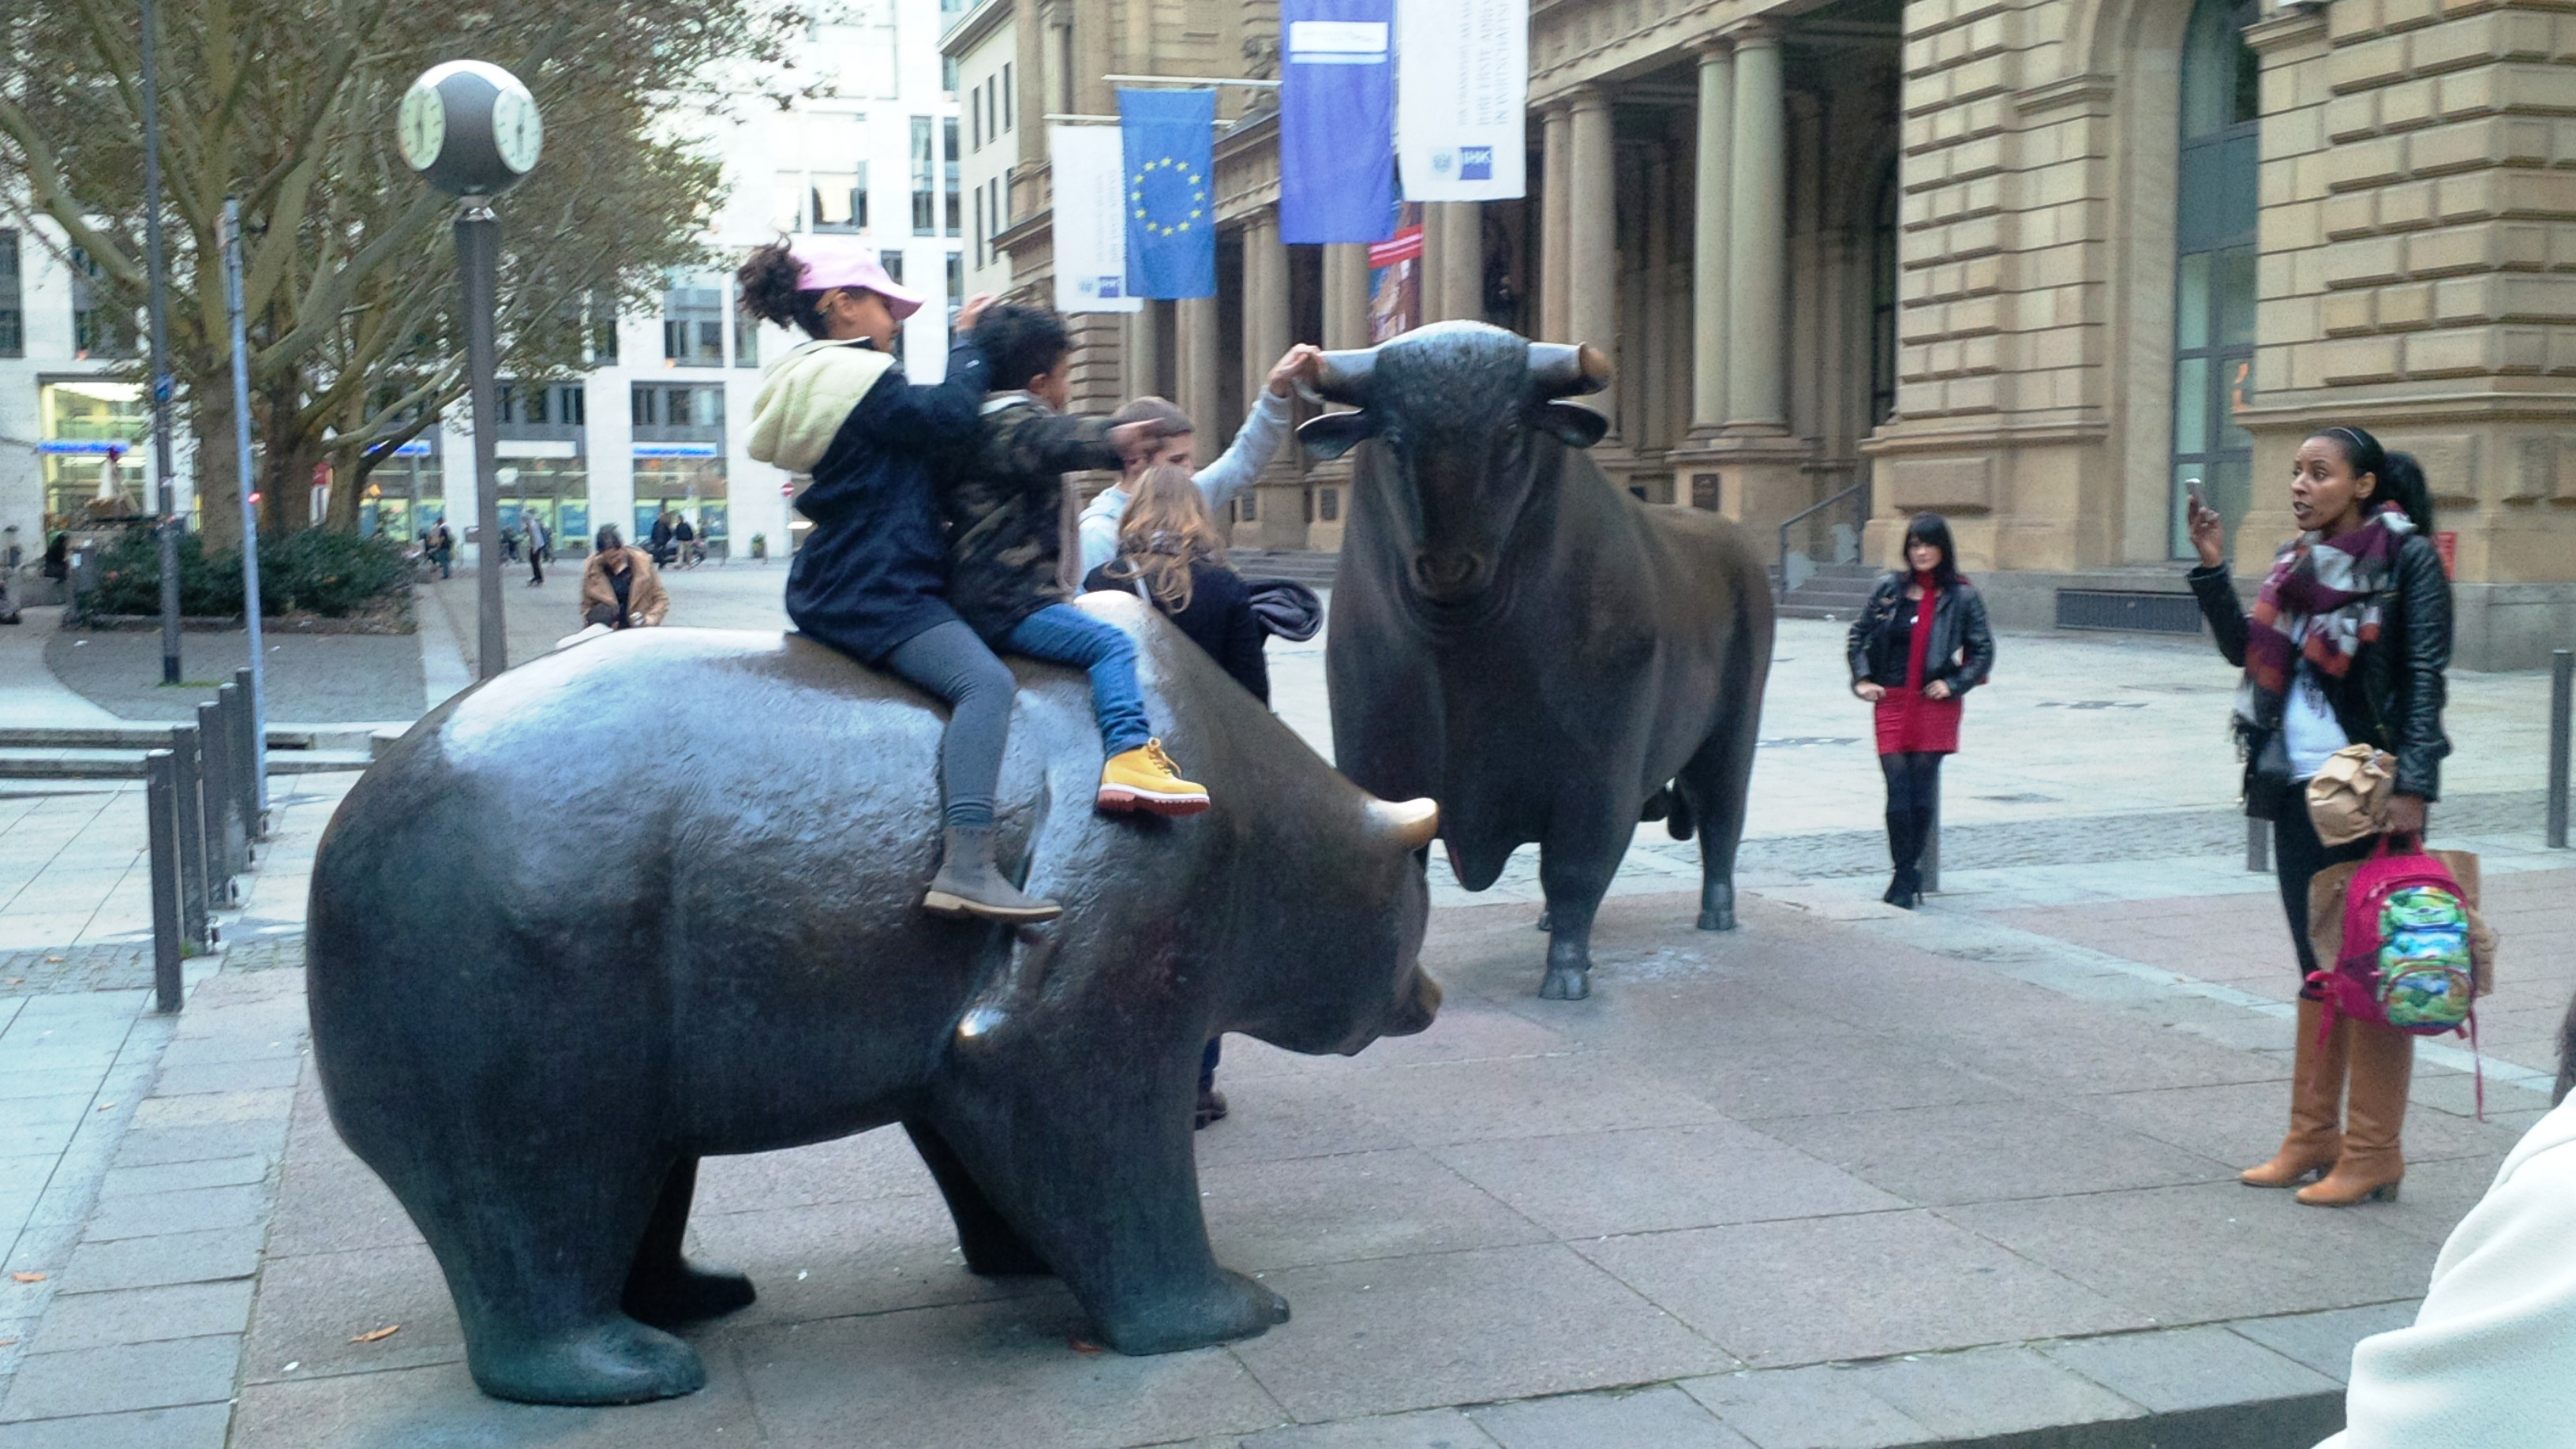 Chart For Indian Stock Market: Bull an Bear in Frankfurt stock exchange.jpg - Wikimedia Commons,Chart